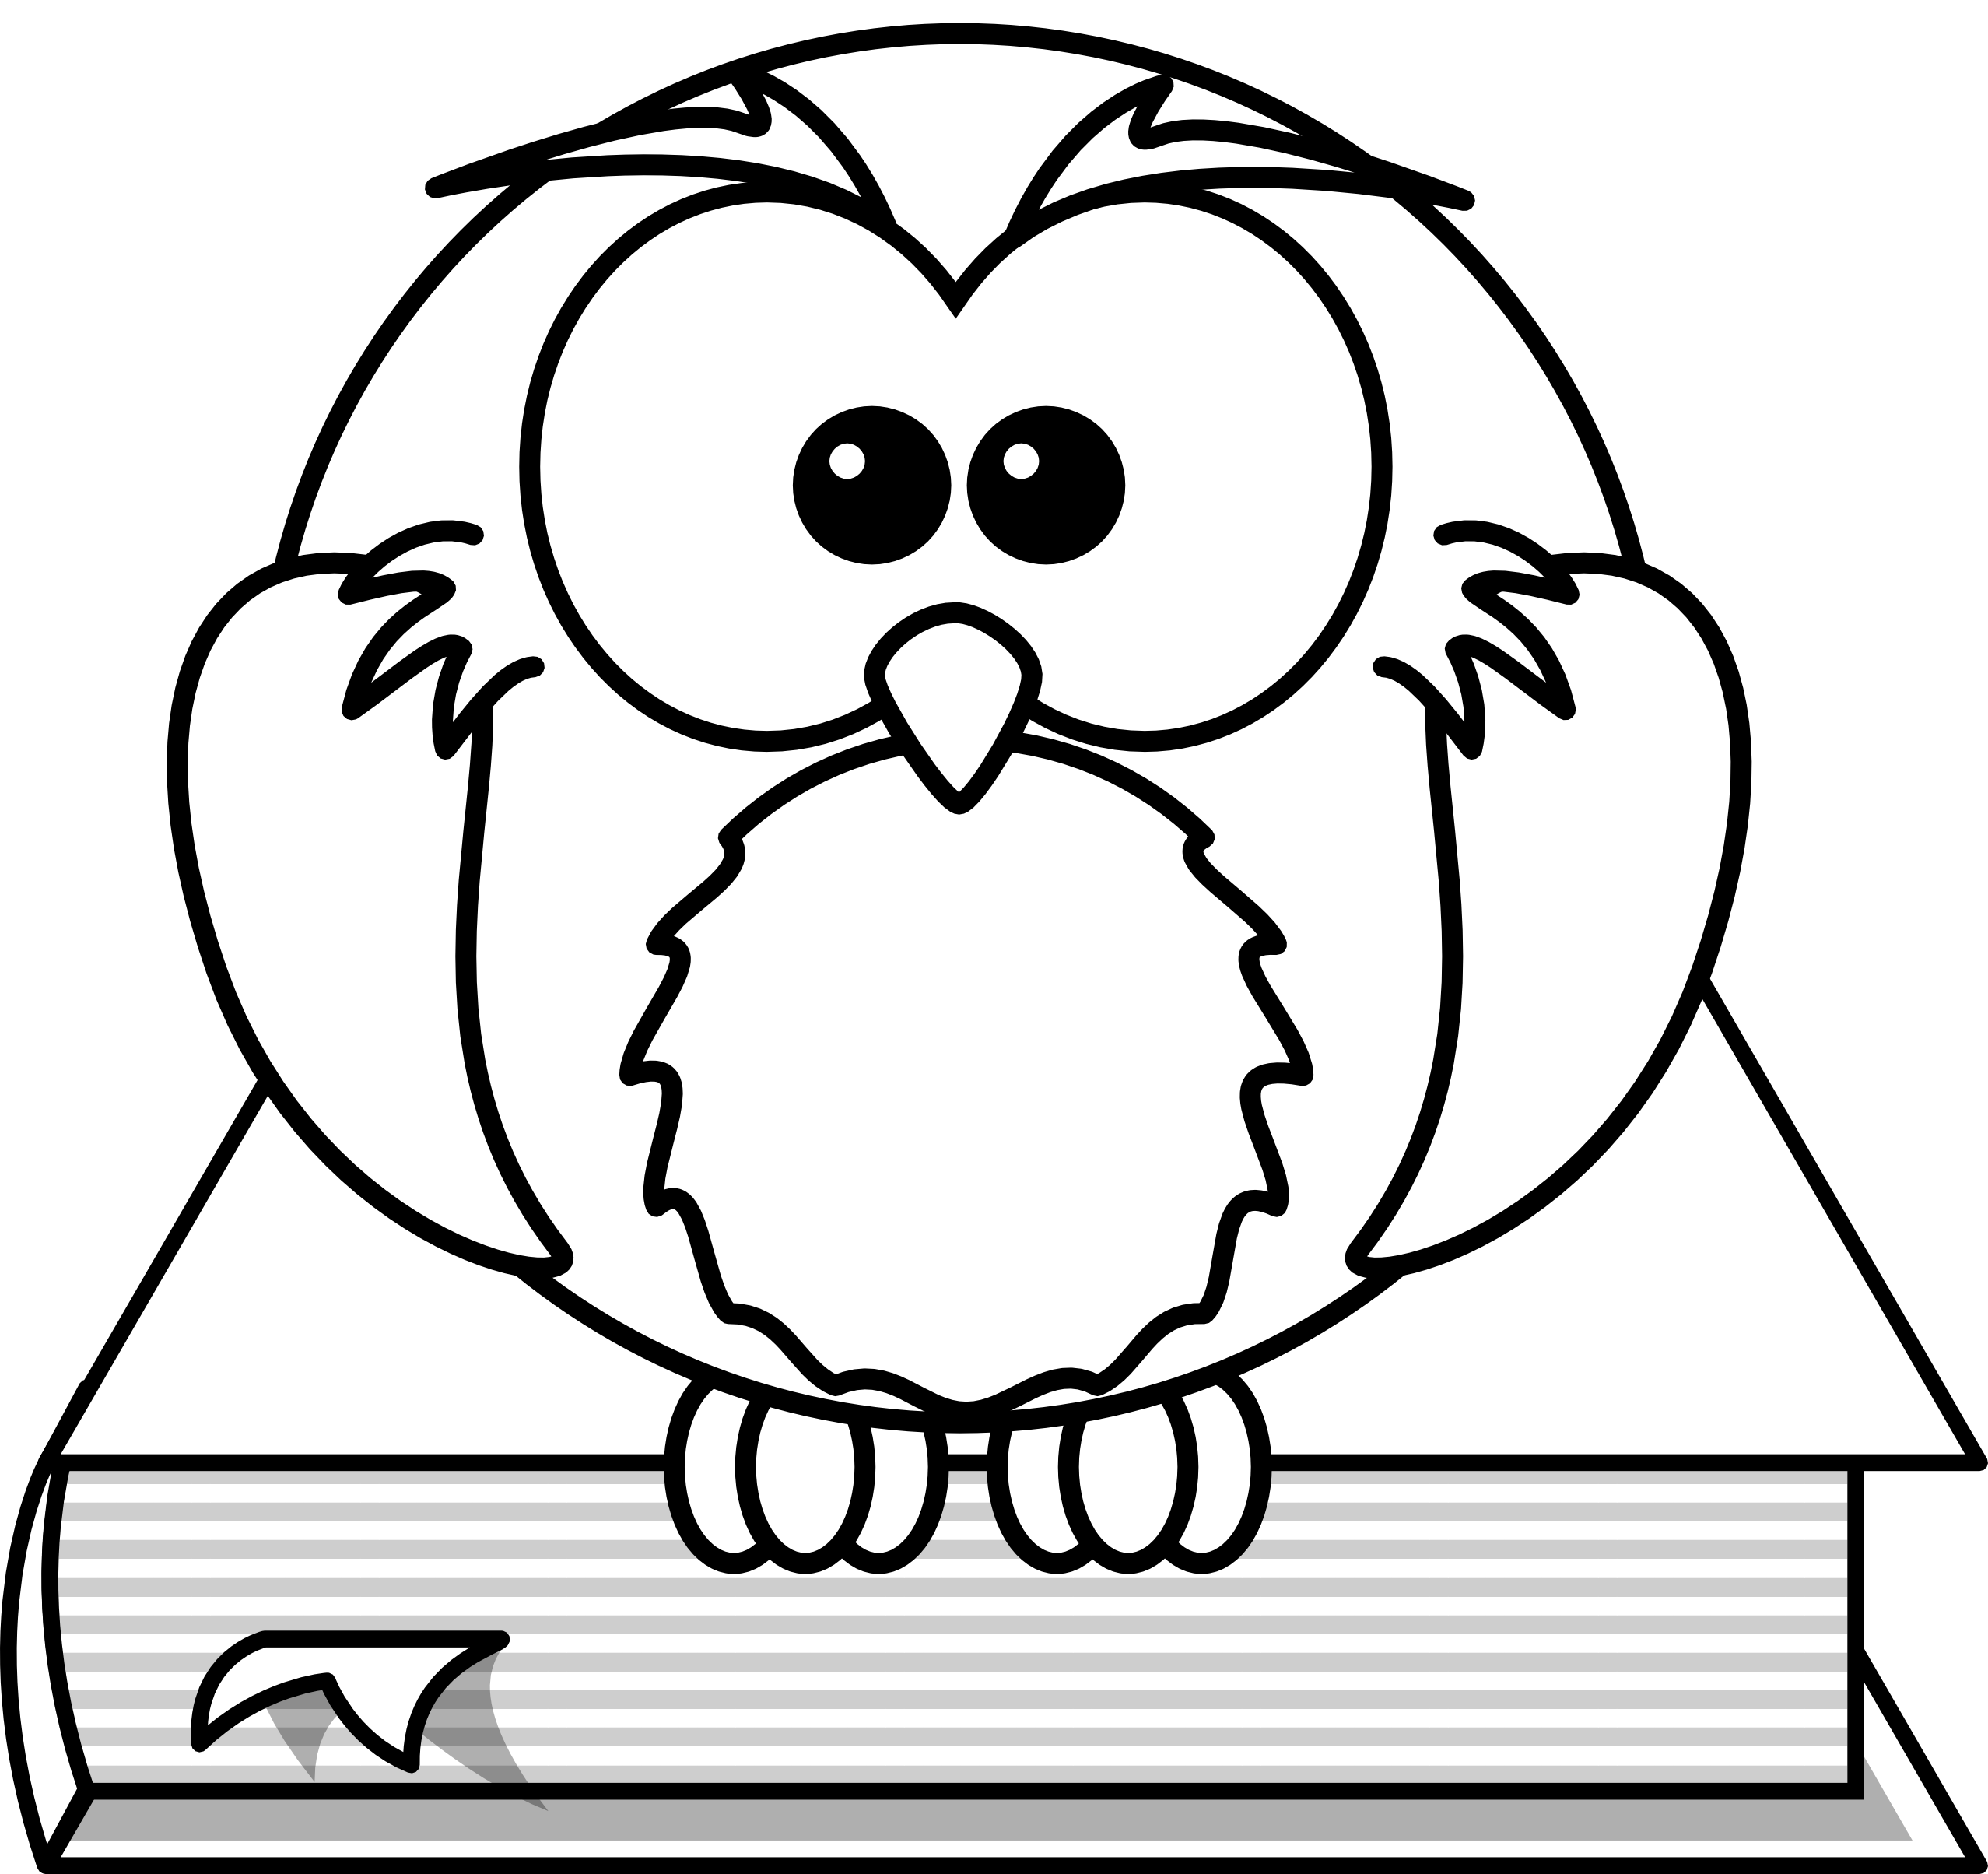 How To Draw A Wise Owl